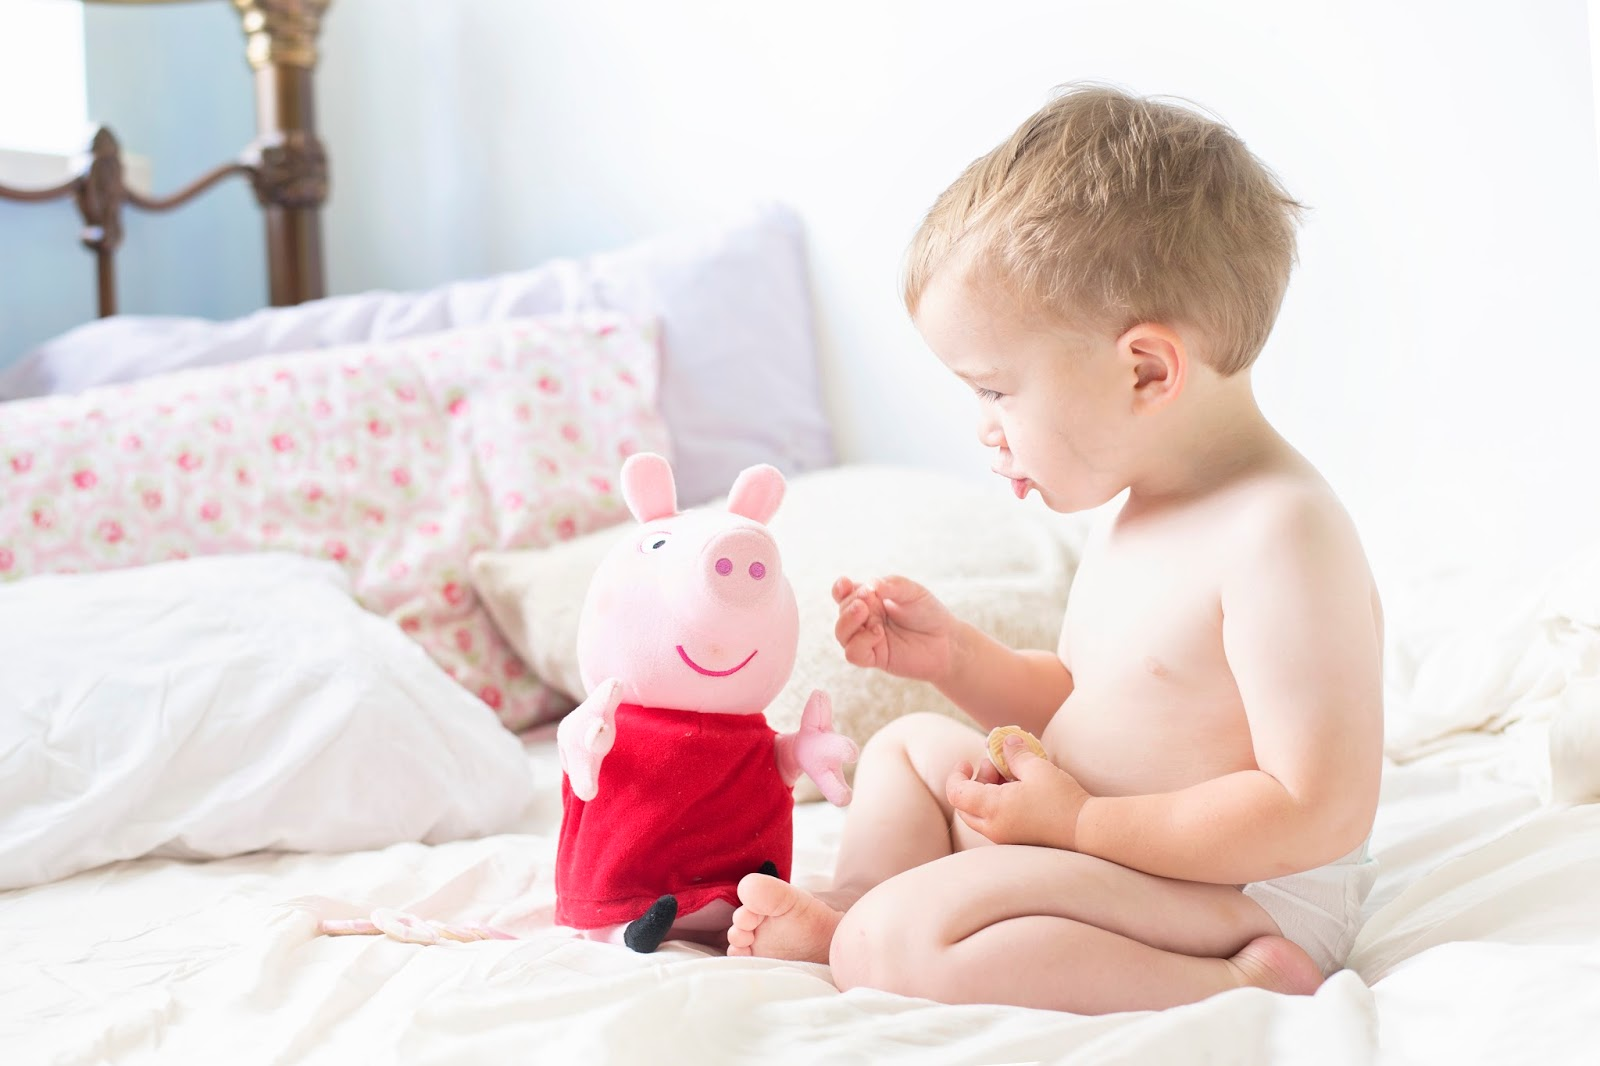 THE NEW PEPPA PIG TOYS: LAUGH WITH ME PEPPA